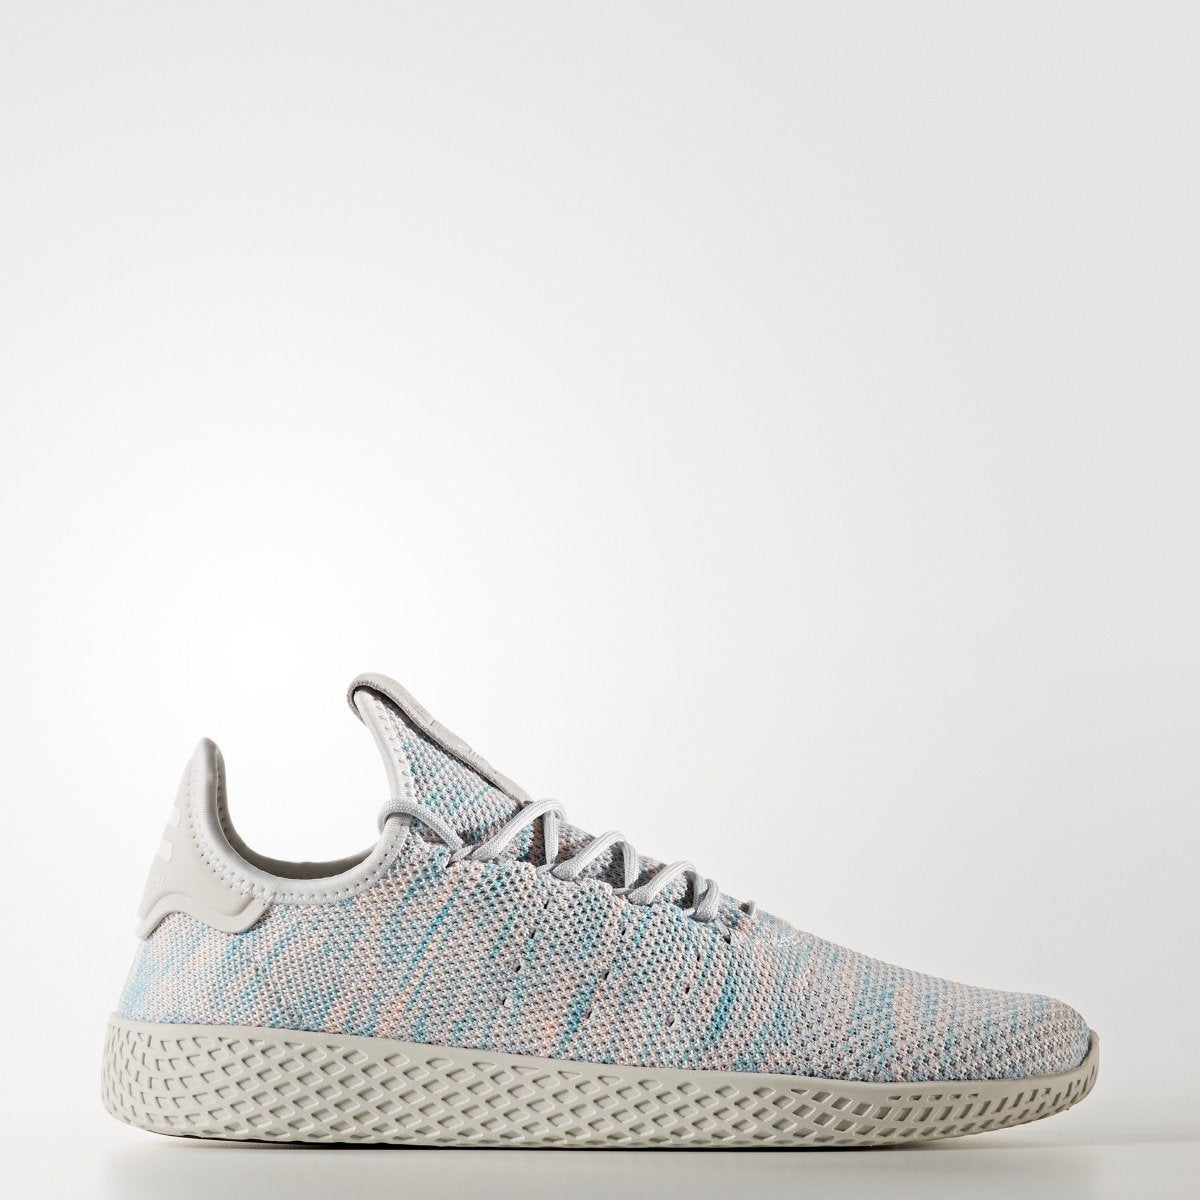 49b3ea19c1949 Men s adidas Originals Pharrell Williams Tennis Hu Shoes Blue Pink Grey